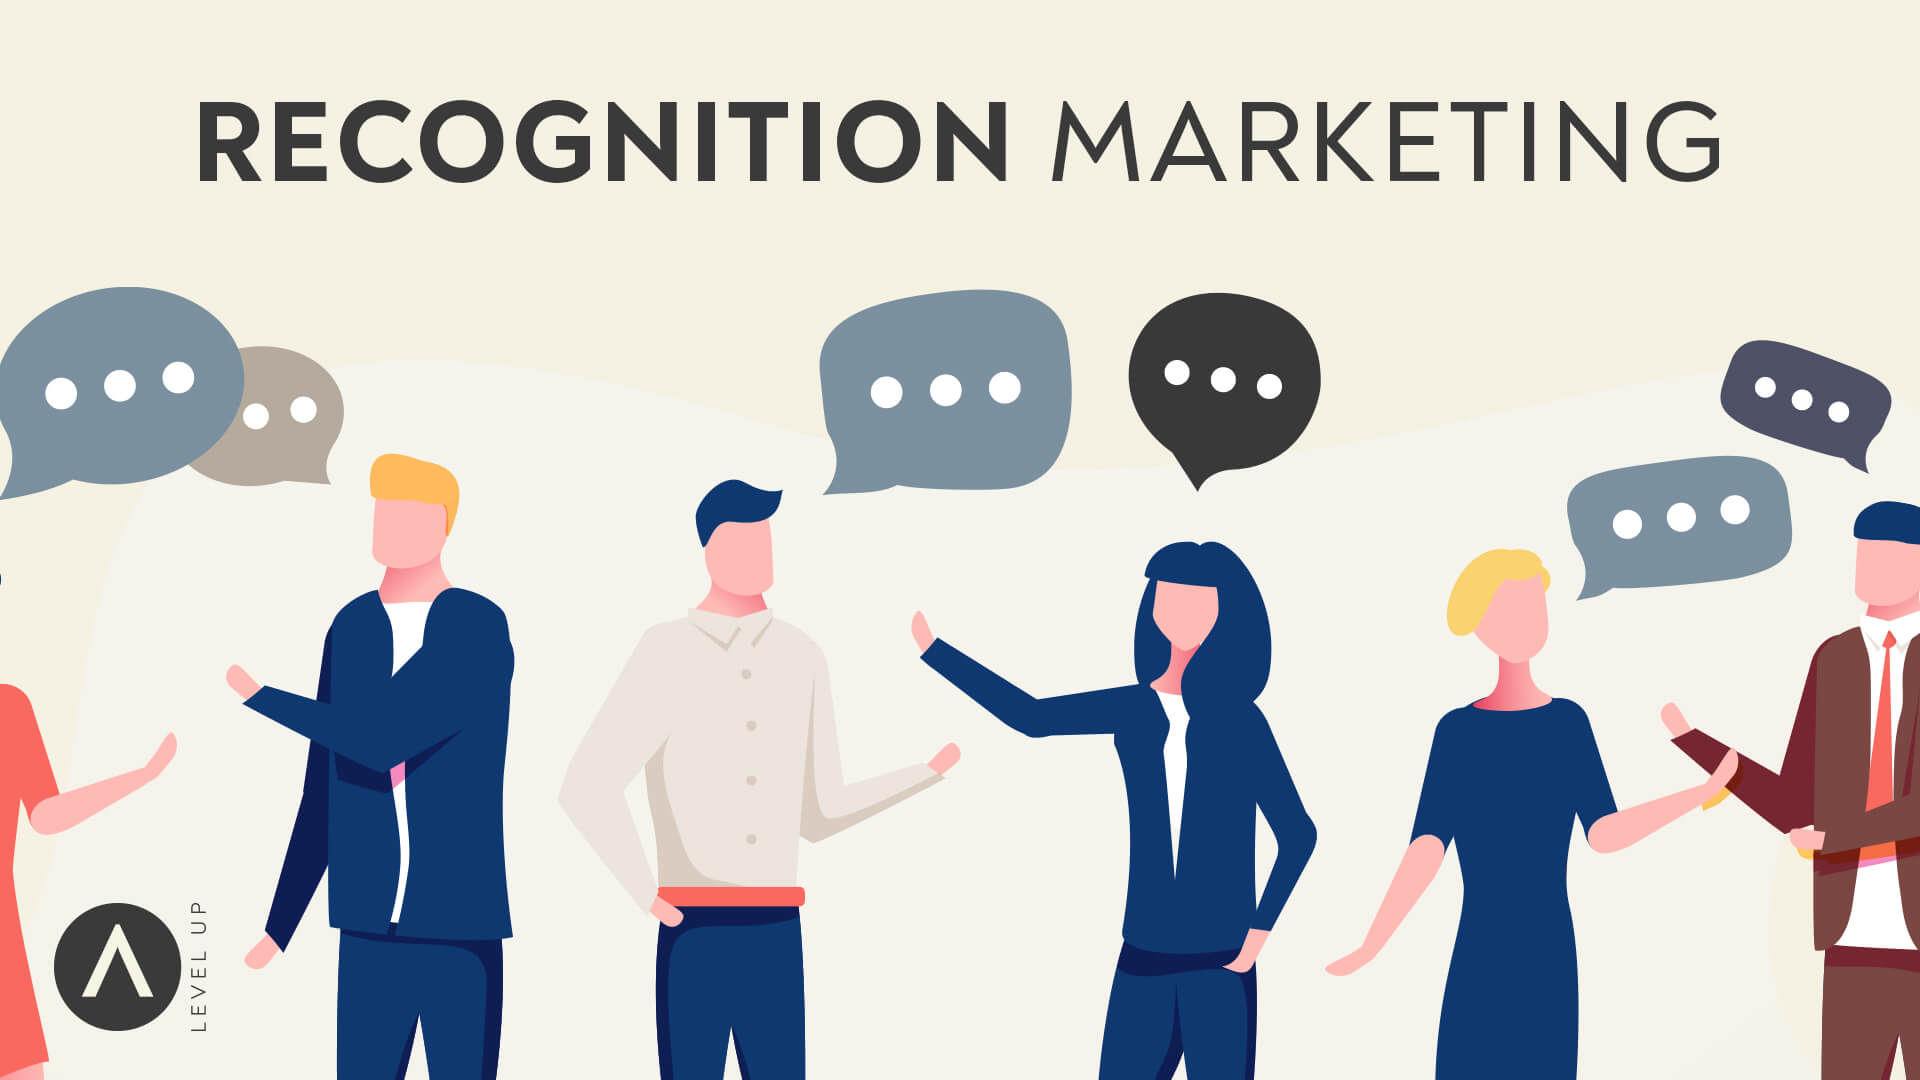 Welcome to Recognition Marketing